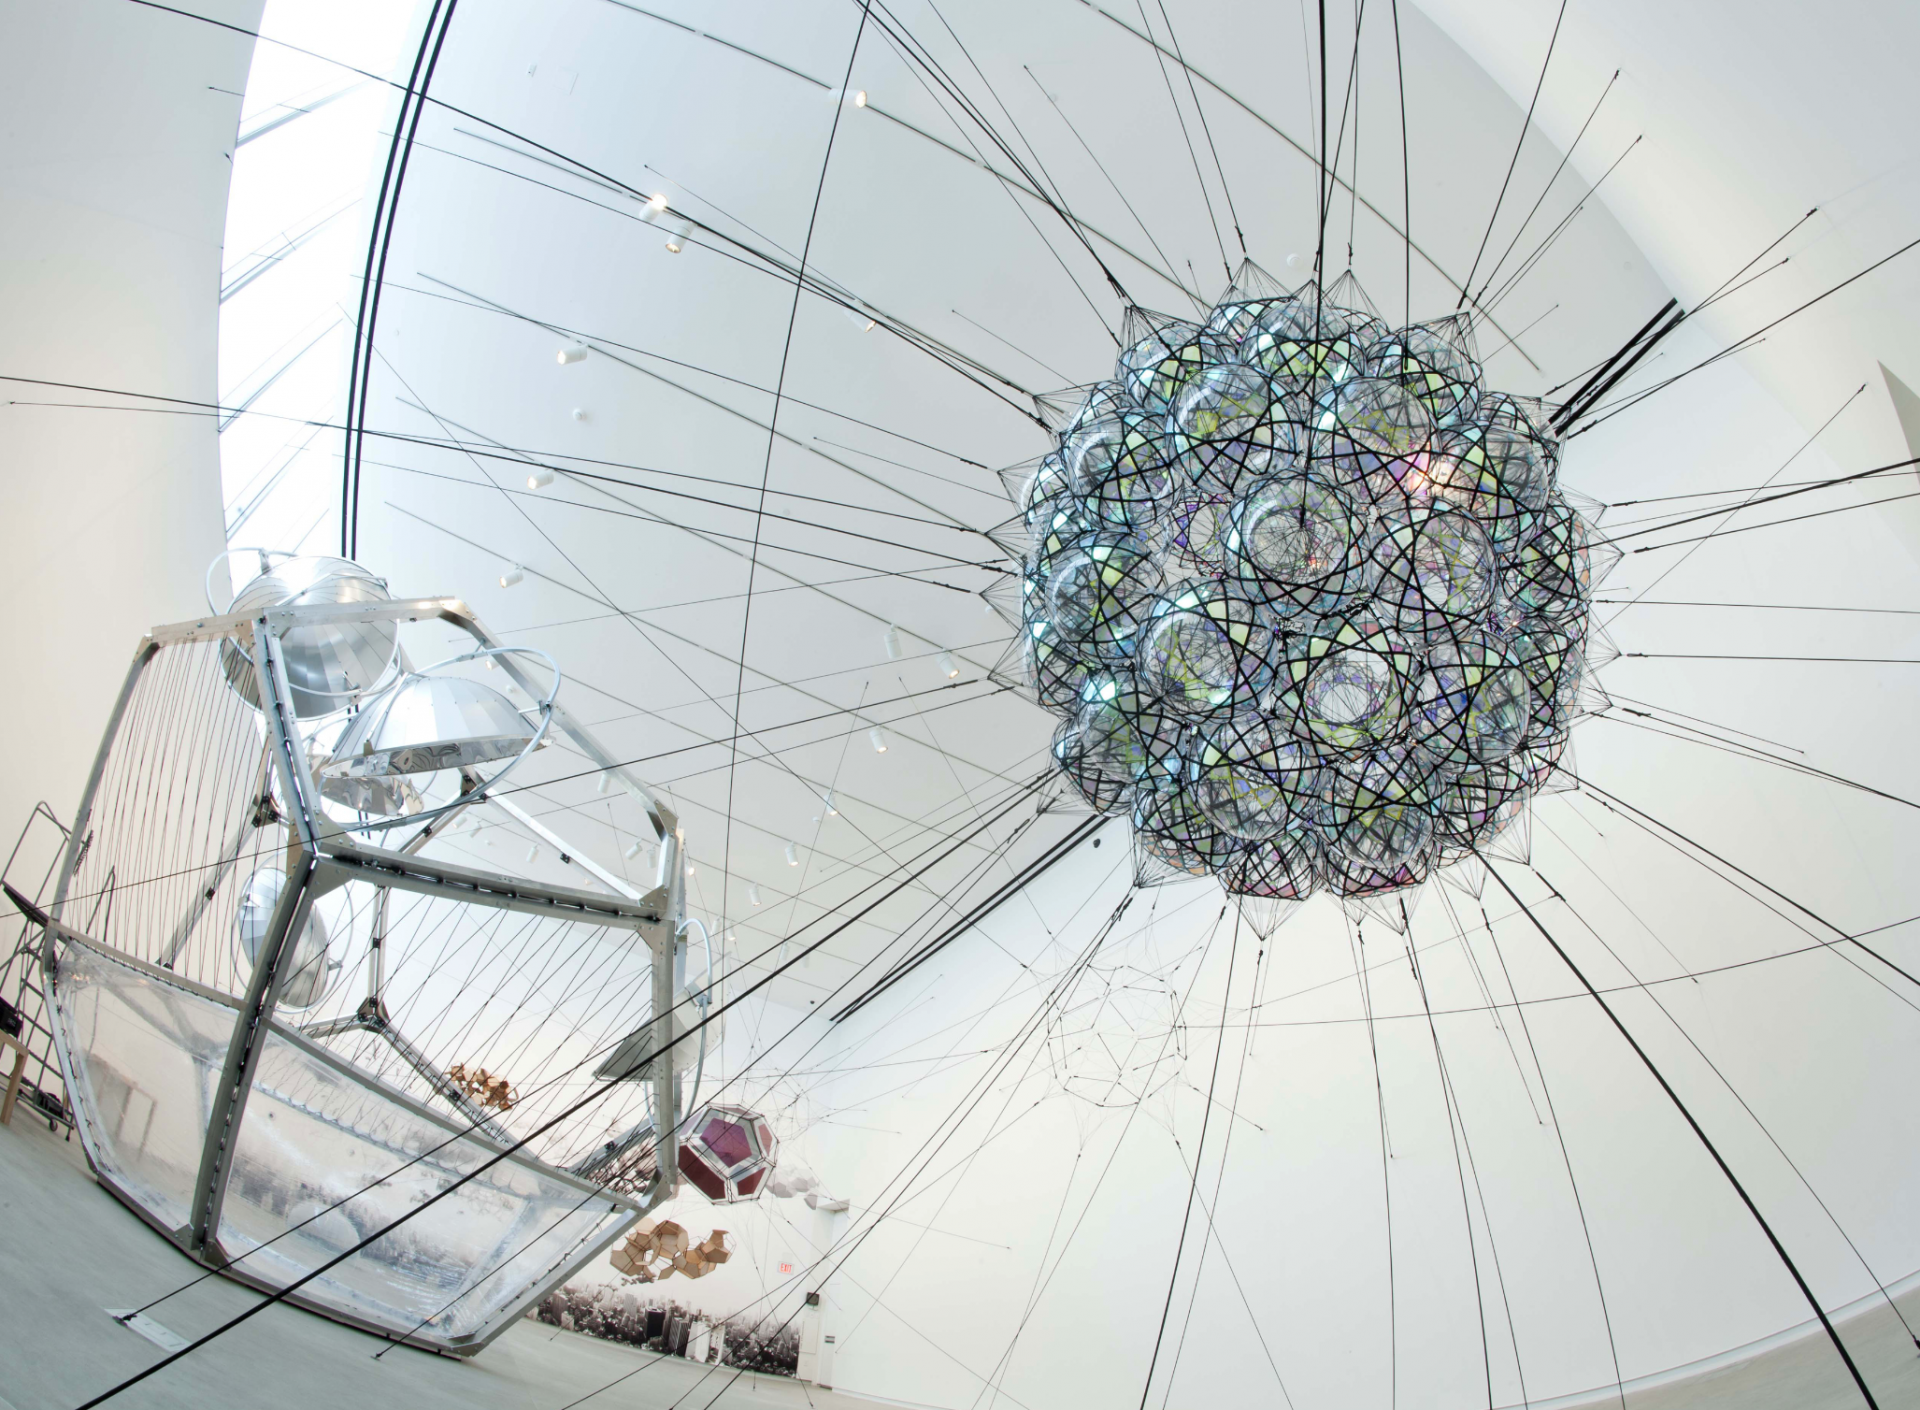 sammlung-philara-tomas-saraceno-80sw-iridescen__flying-garden_air-port-city-2011